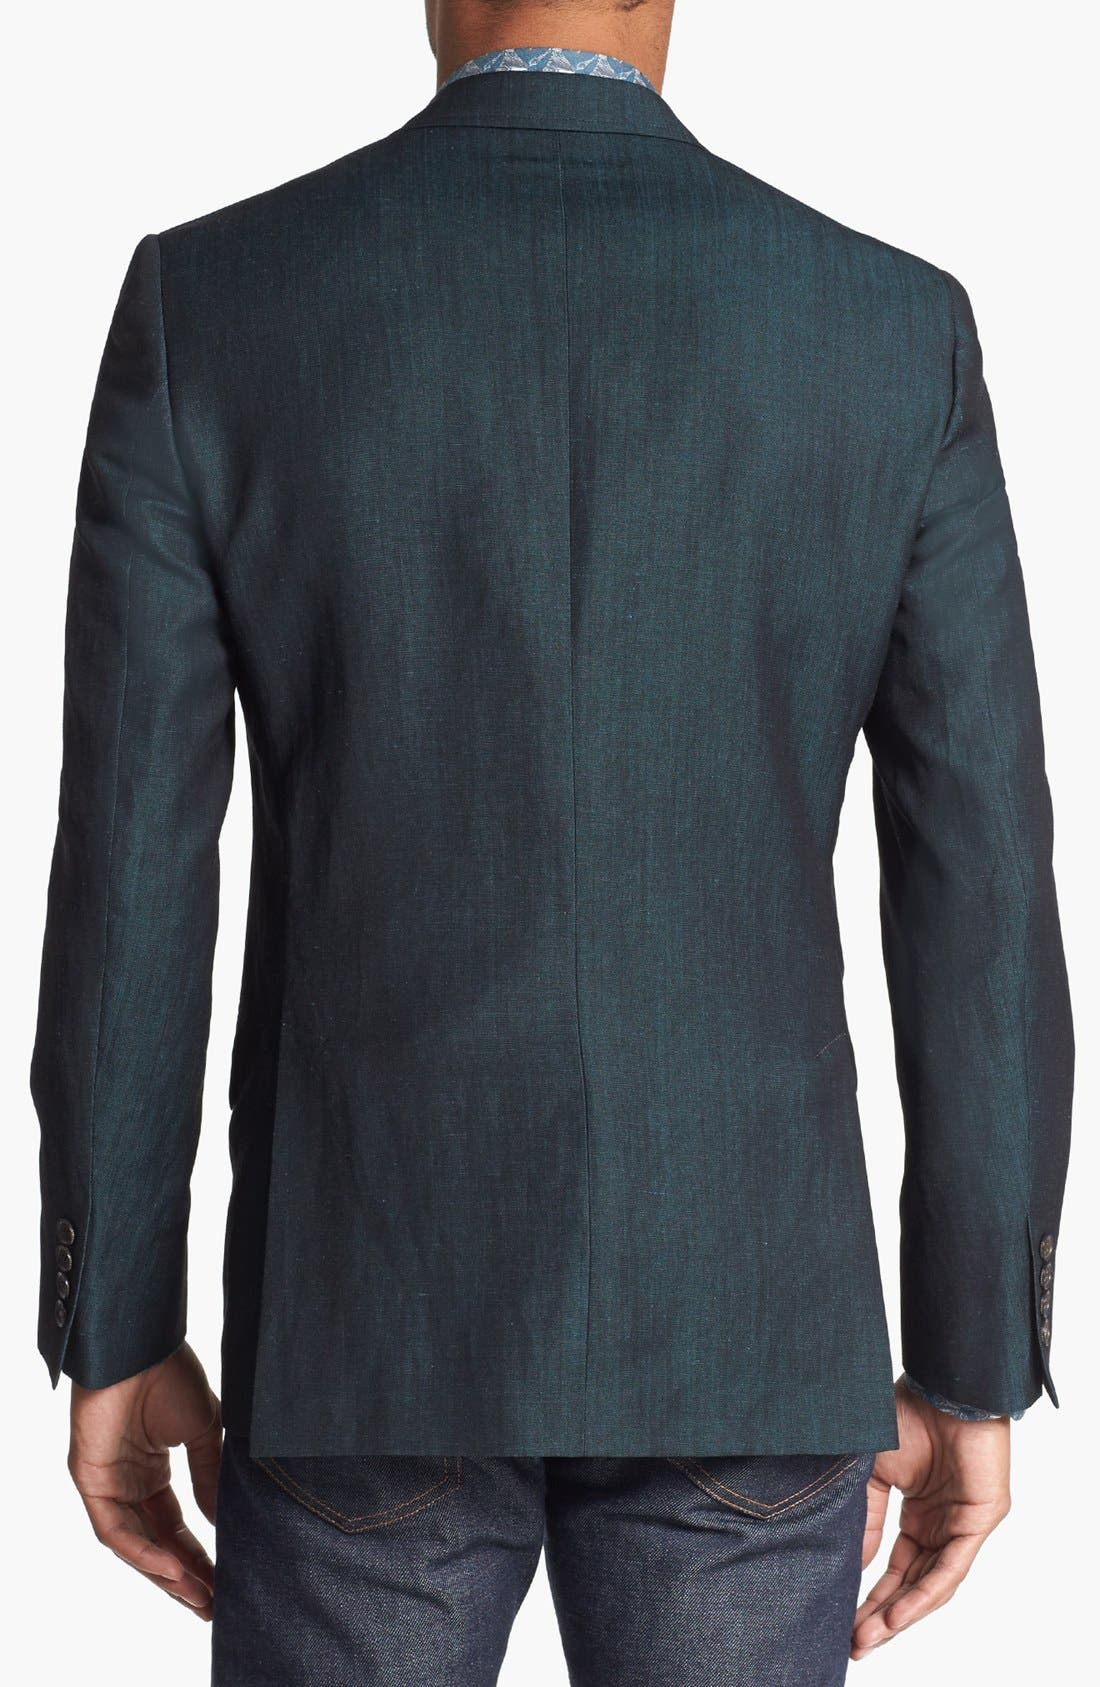 Alternate Image 2  - Ted Baker London 'Tram' Trim Fit Microcheck Sportcoat